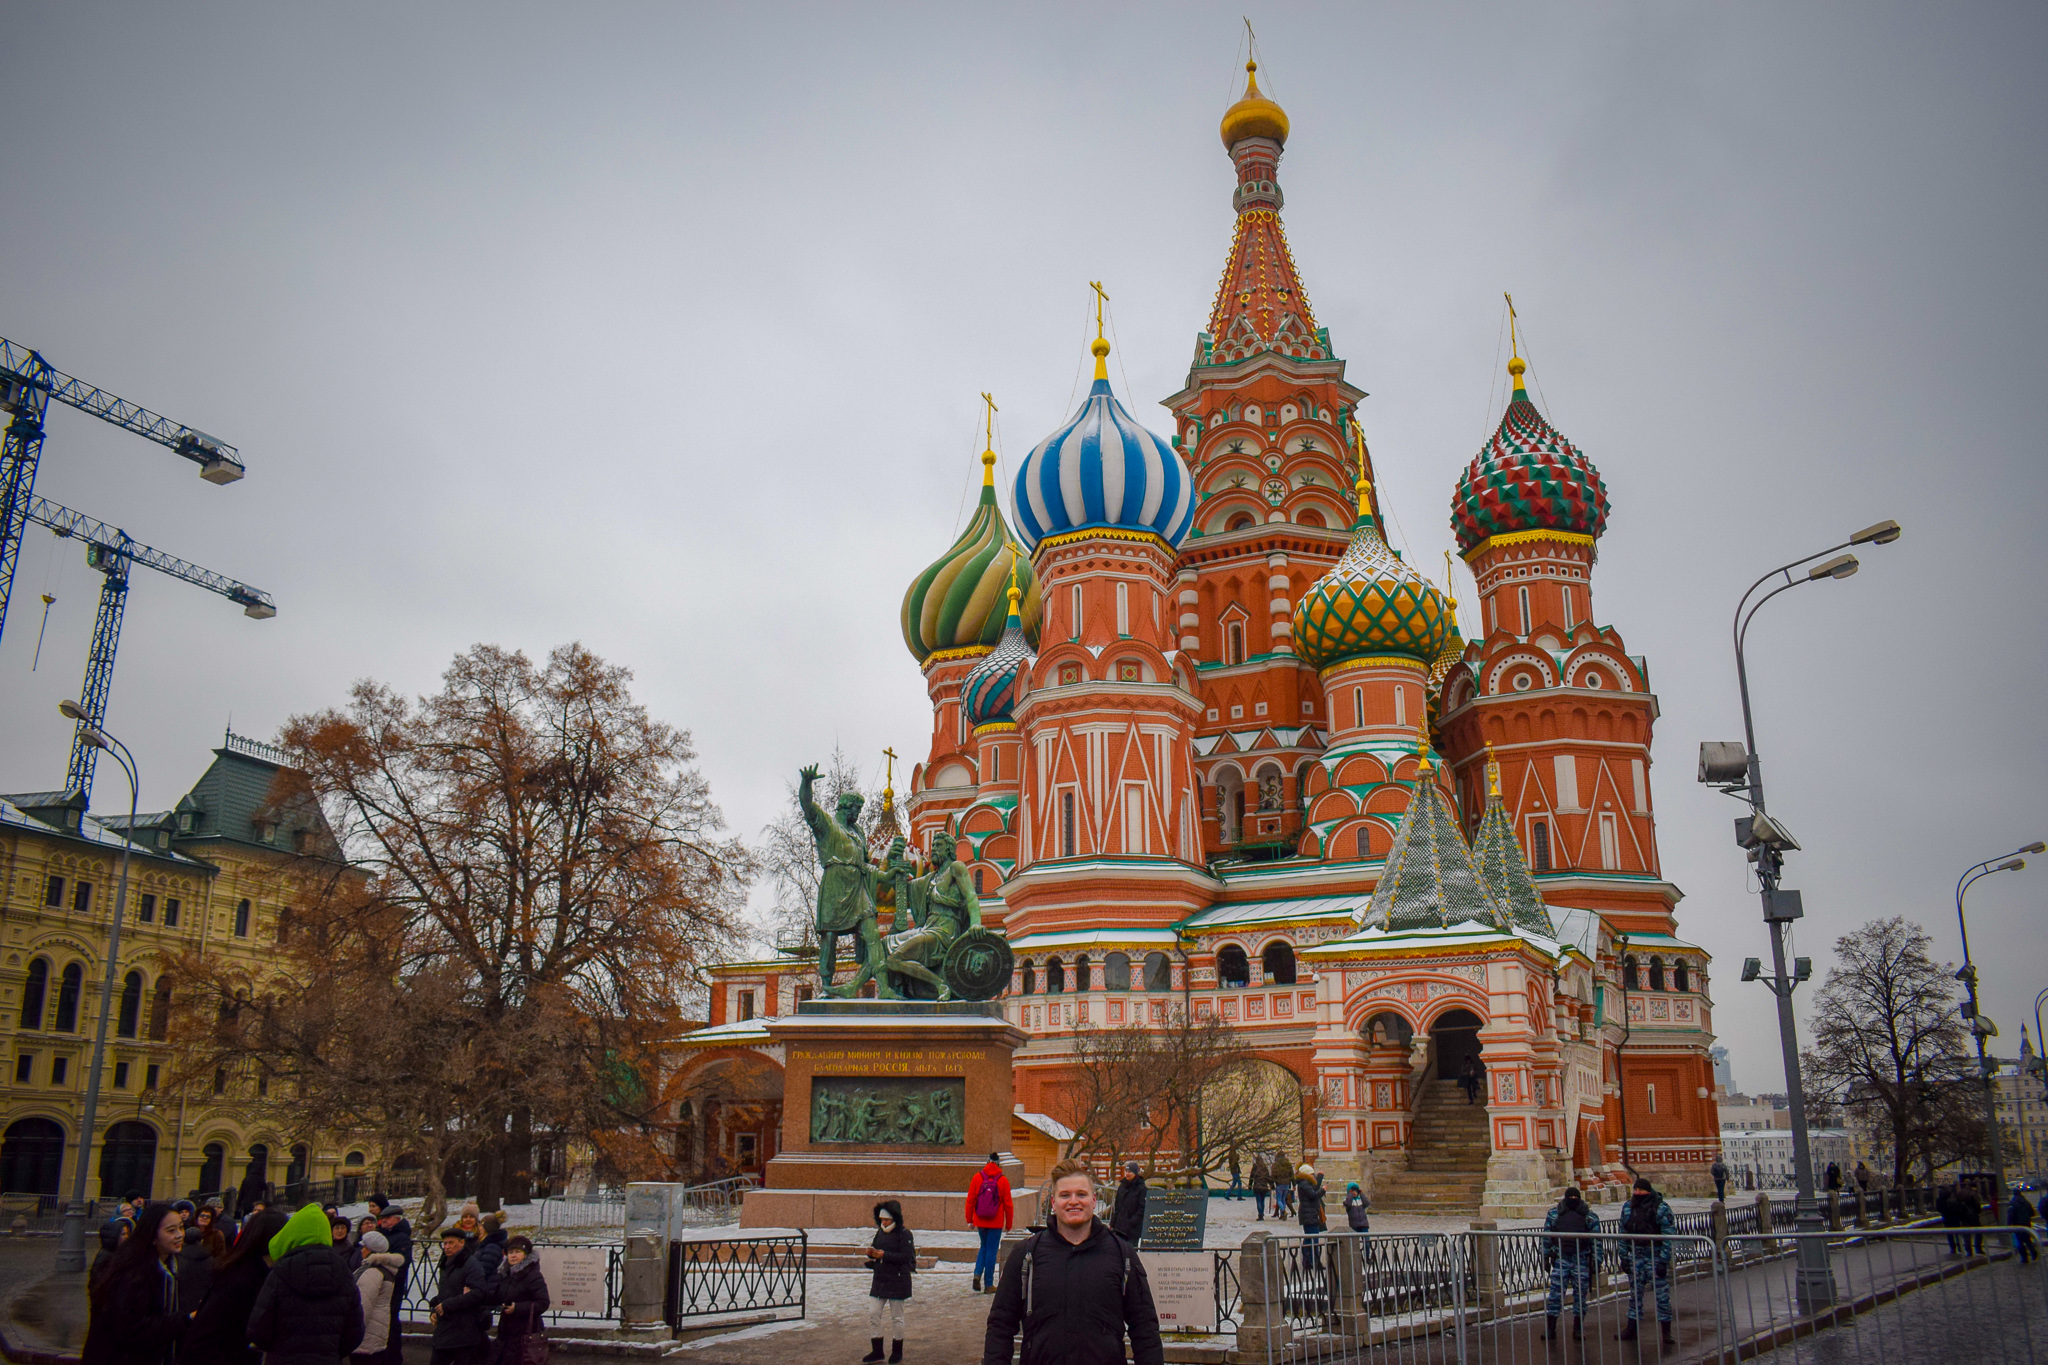 Saint Basil's Cathedral is one of the most stunning buildings in the world.